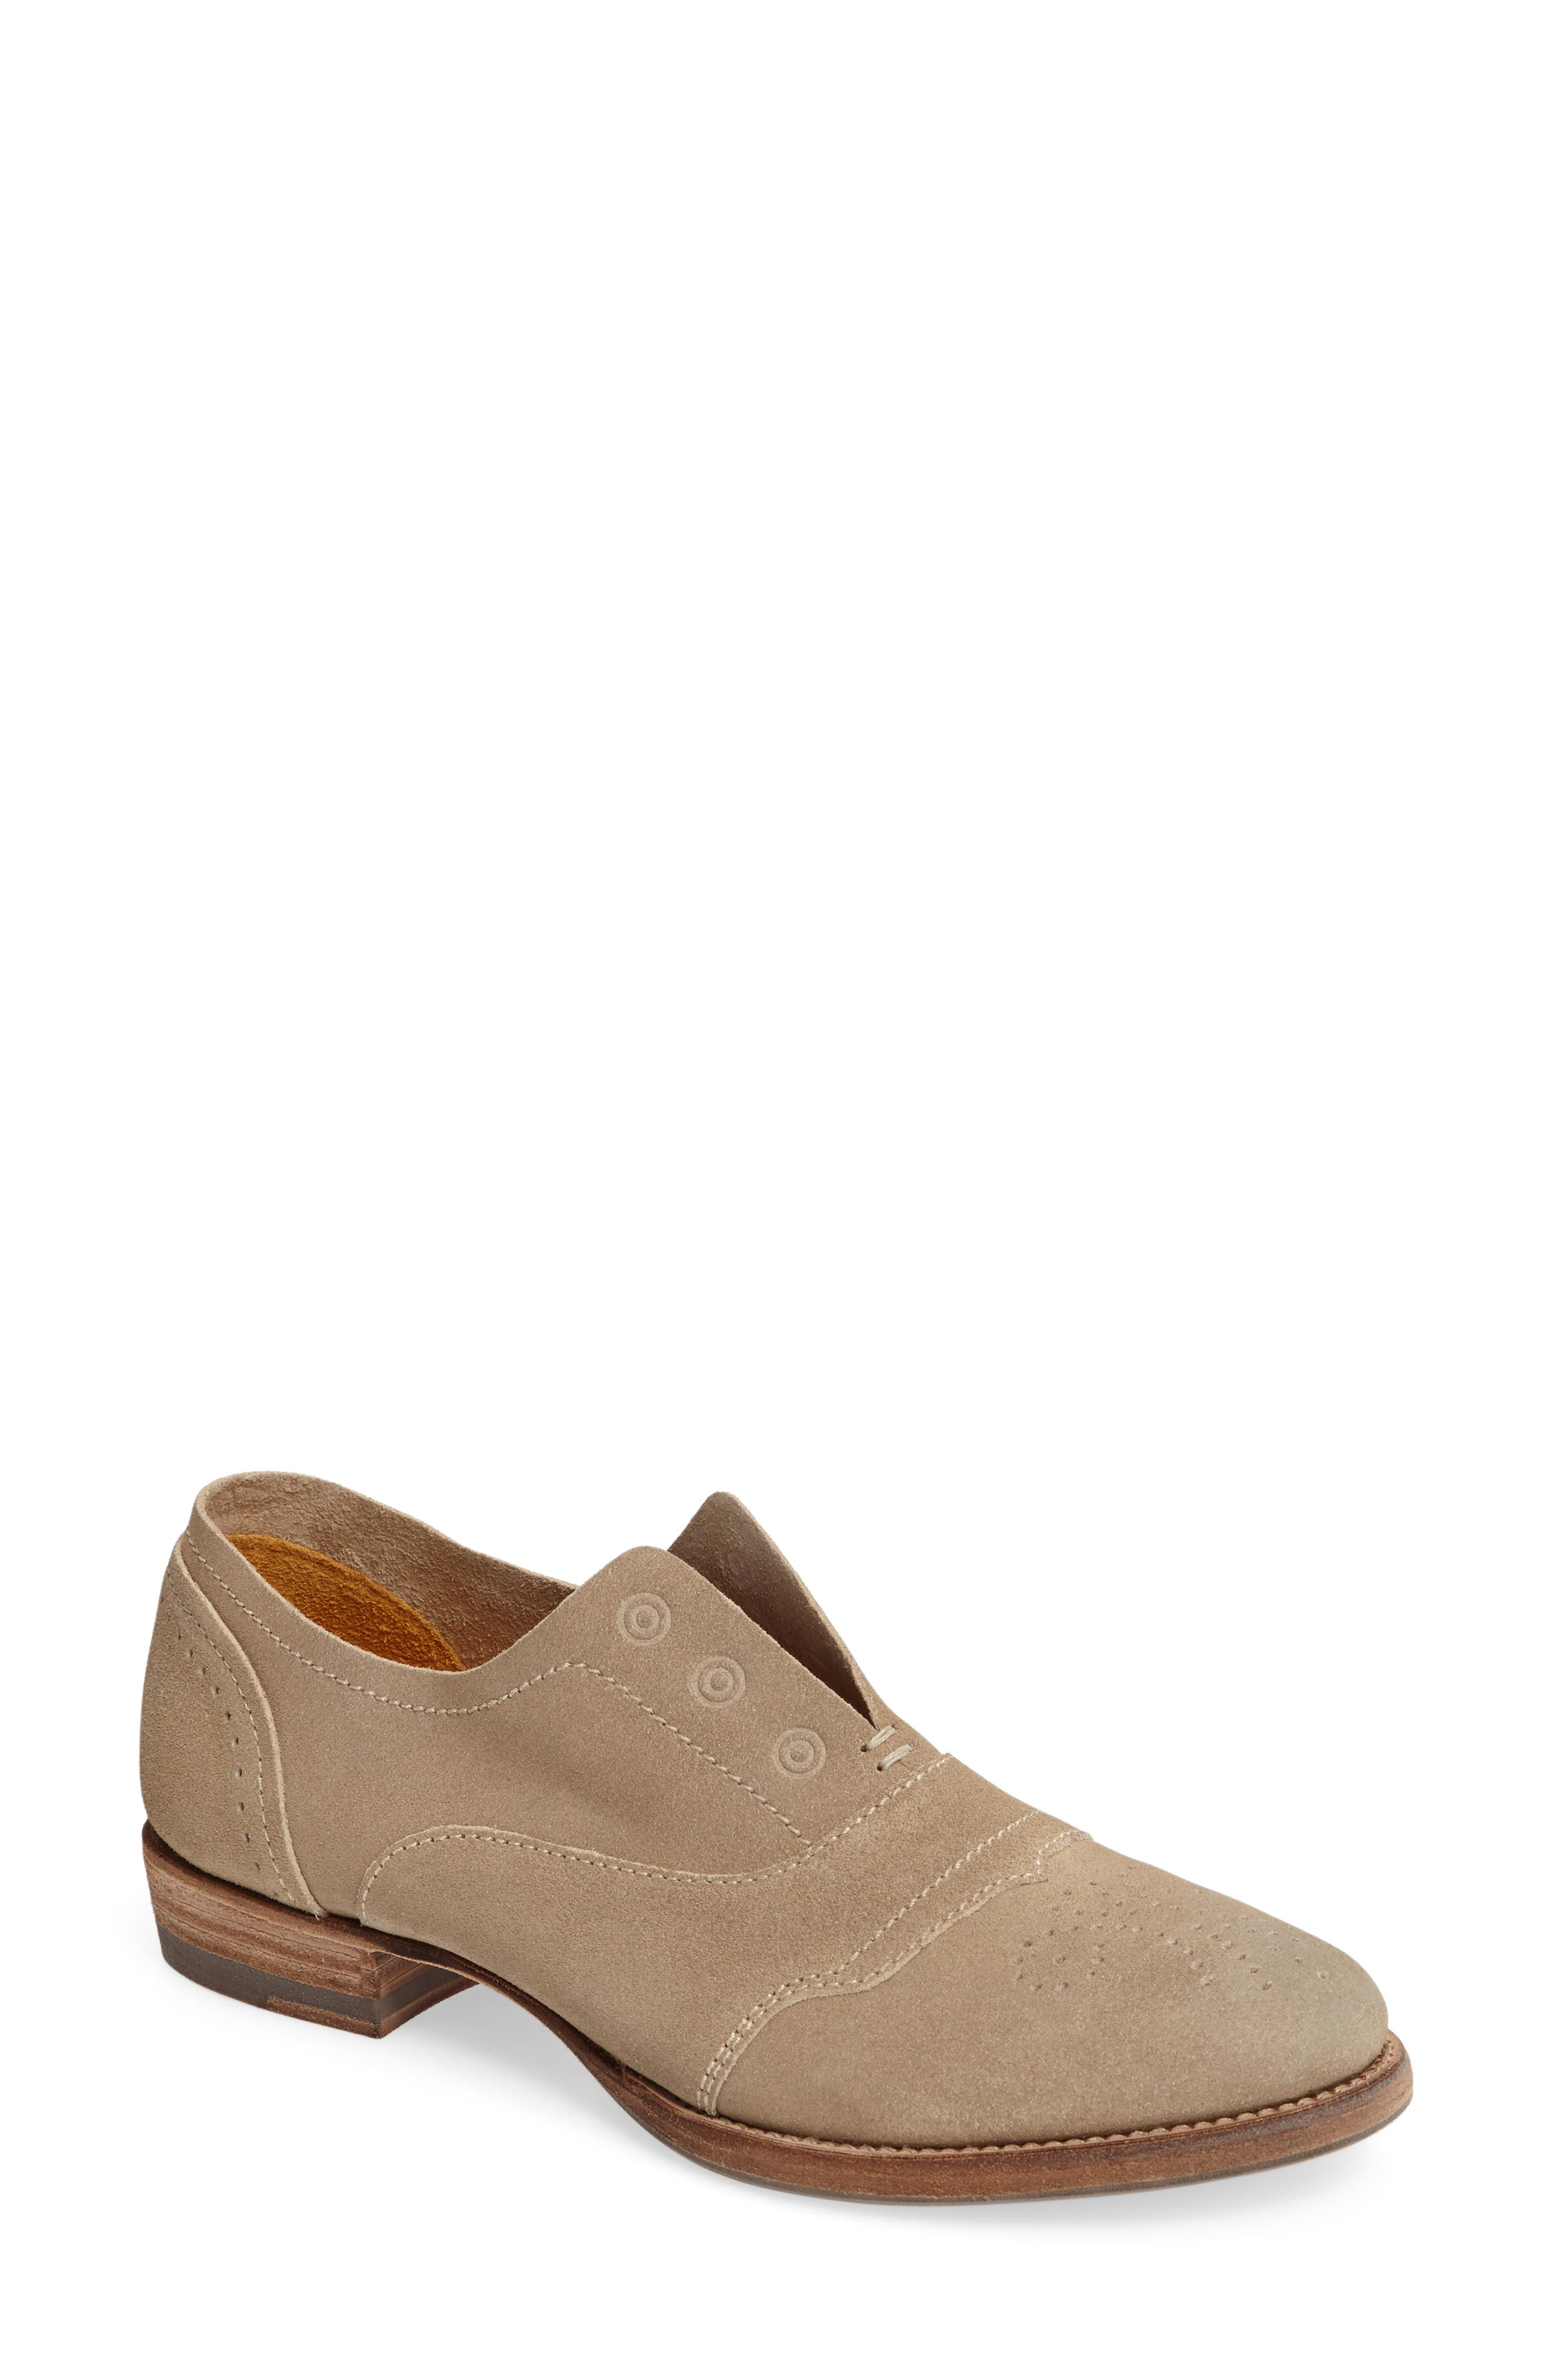 Main Image - Blackstone 'HL55' Slip-On Oxford (Women)